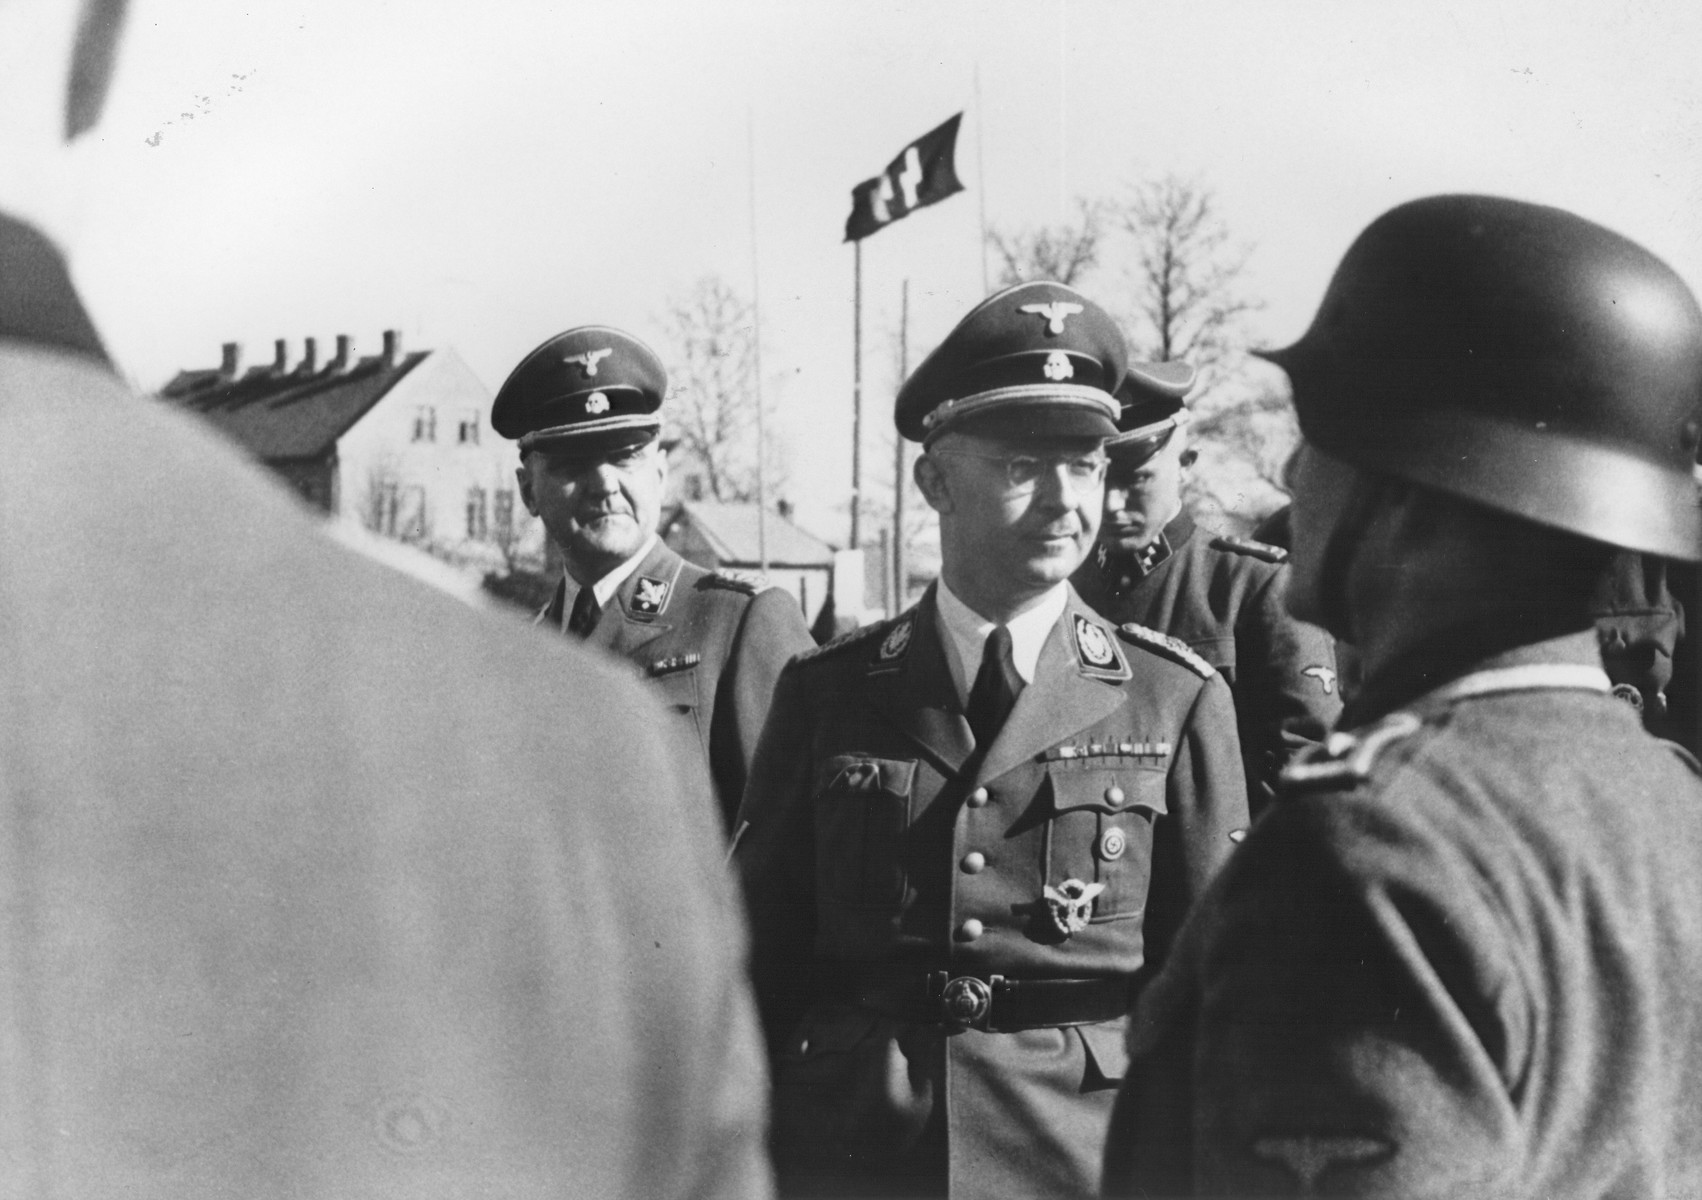 Reichsfuehrer-SS Heinrich Himmler [probably reviewing a unit of SS troops].  Pictured to the left of Himmler is Gottlob Berger.